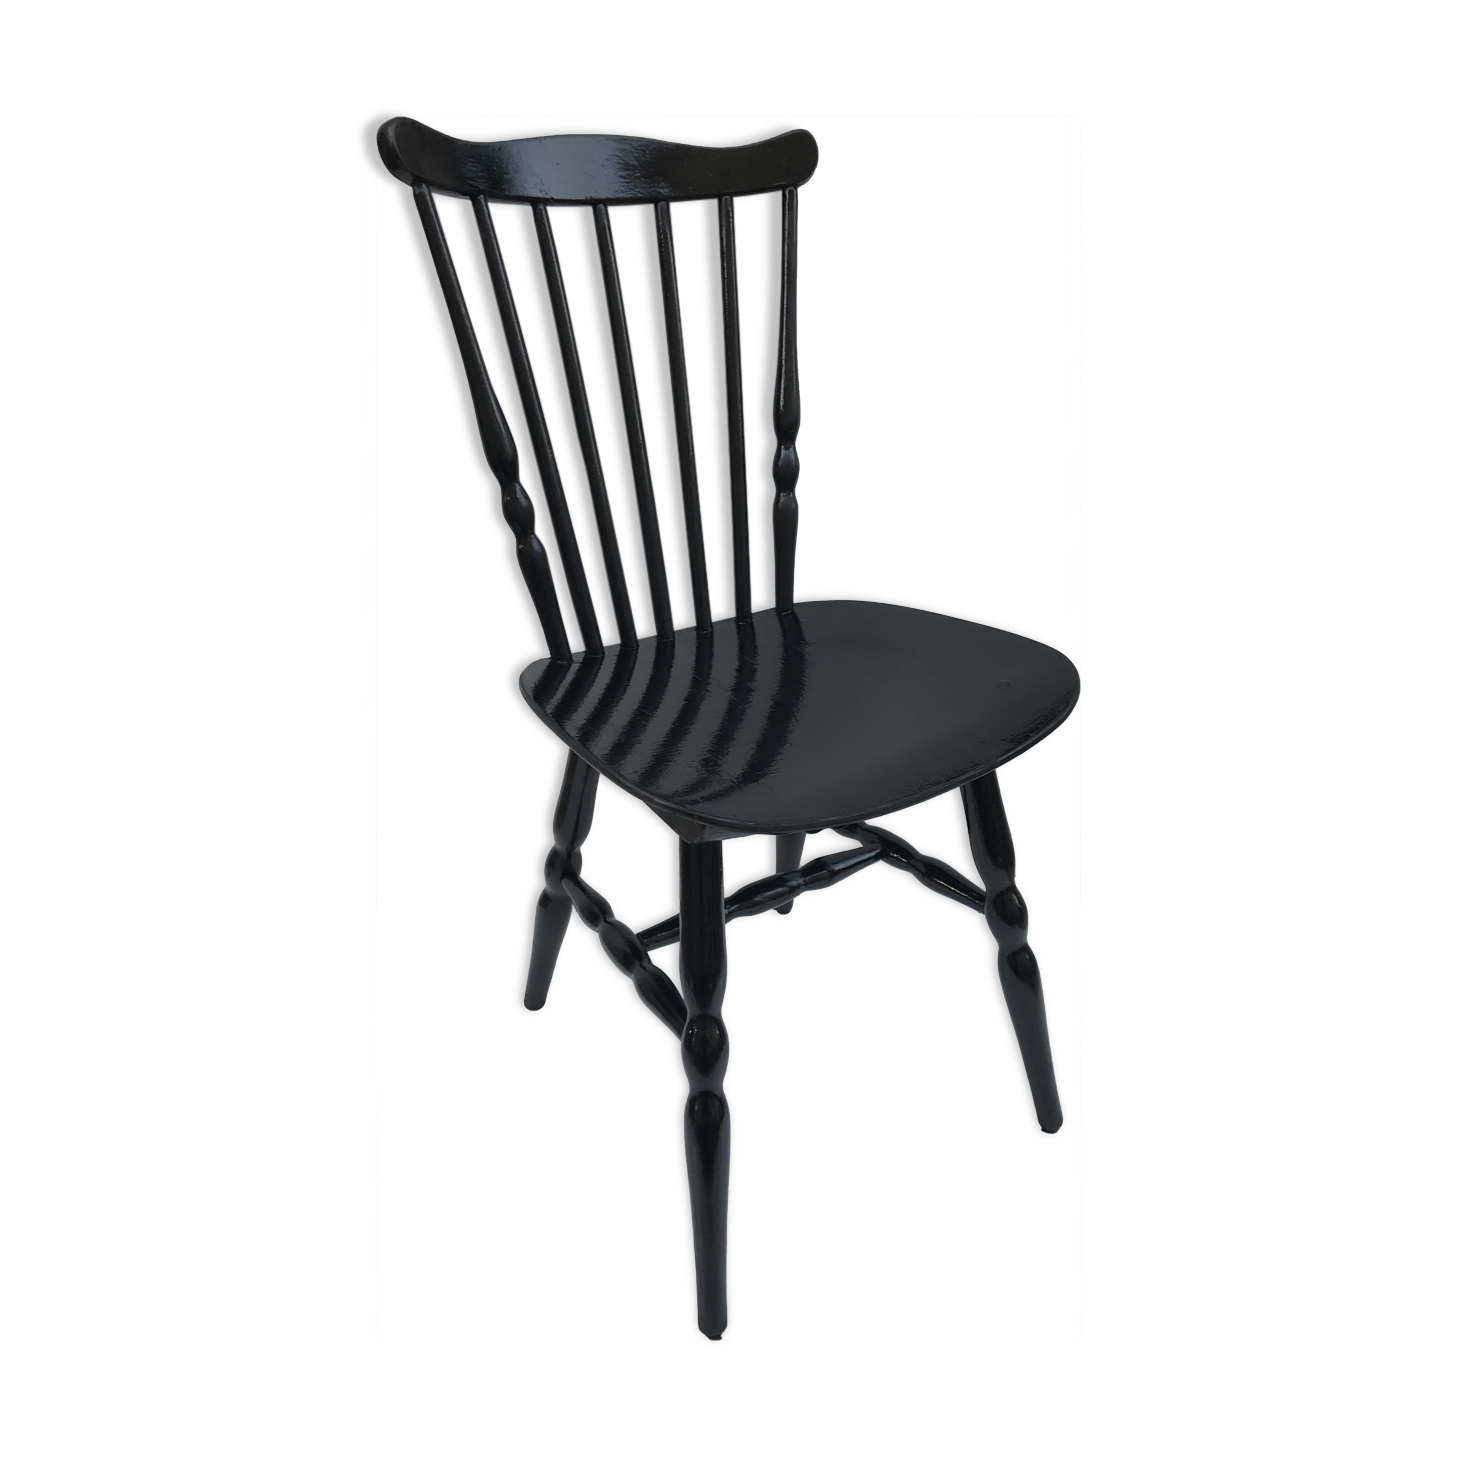 chaises bistrot noires great ikea chaises noires. Black Bedroom Furniture Sets. Home Design Ideas